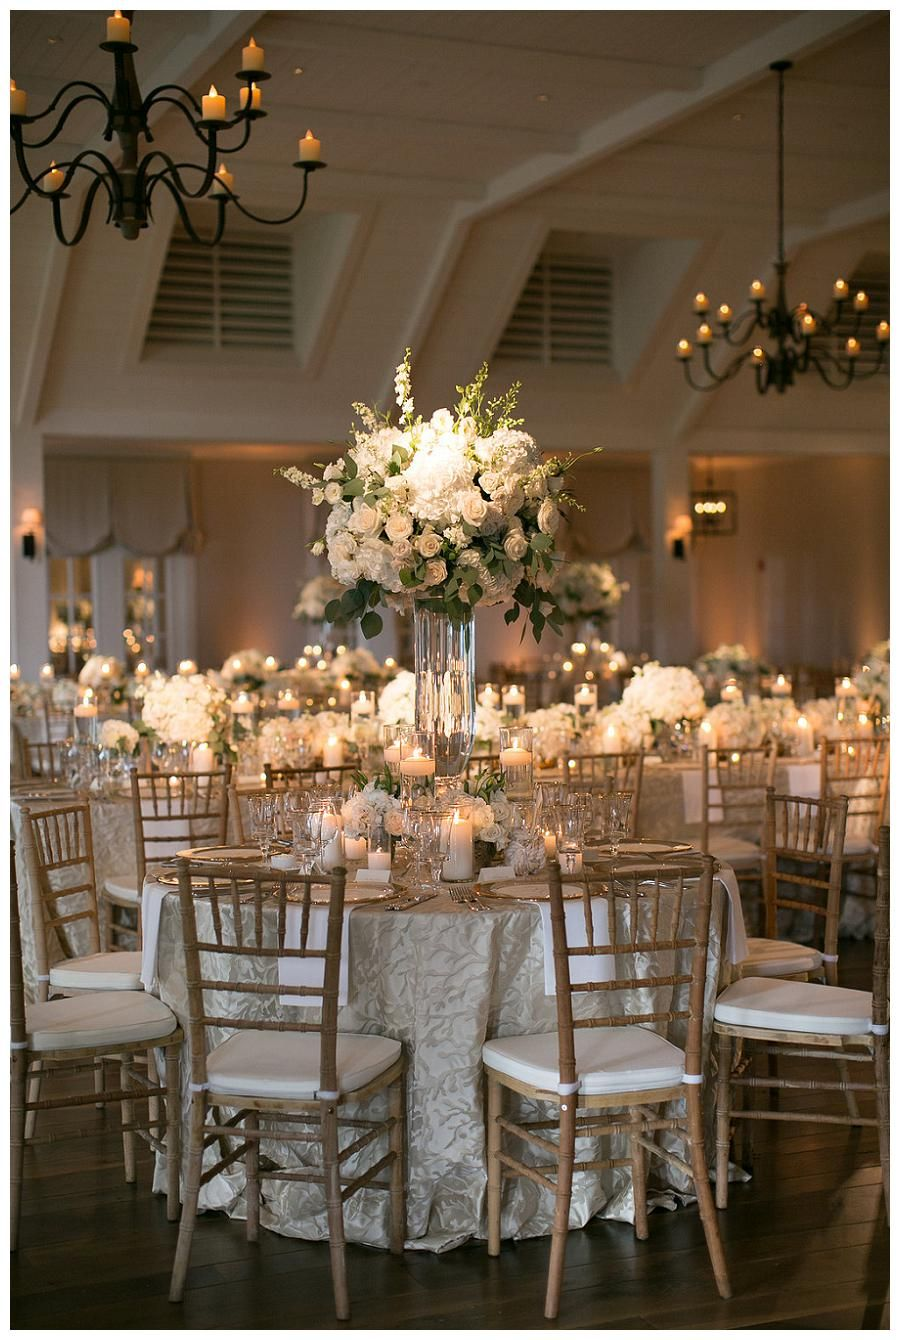 Decor for chairs wedding  White Wedding Decoration Ideas  Floating candles Glass vessel